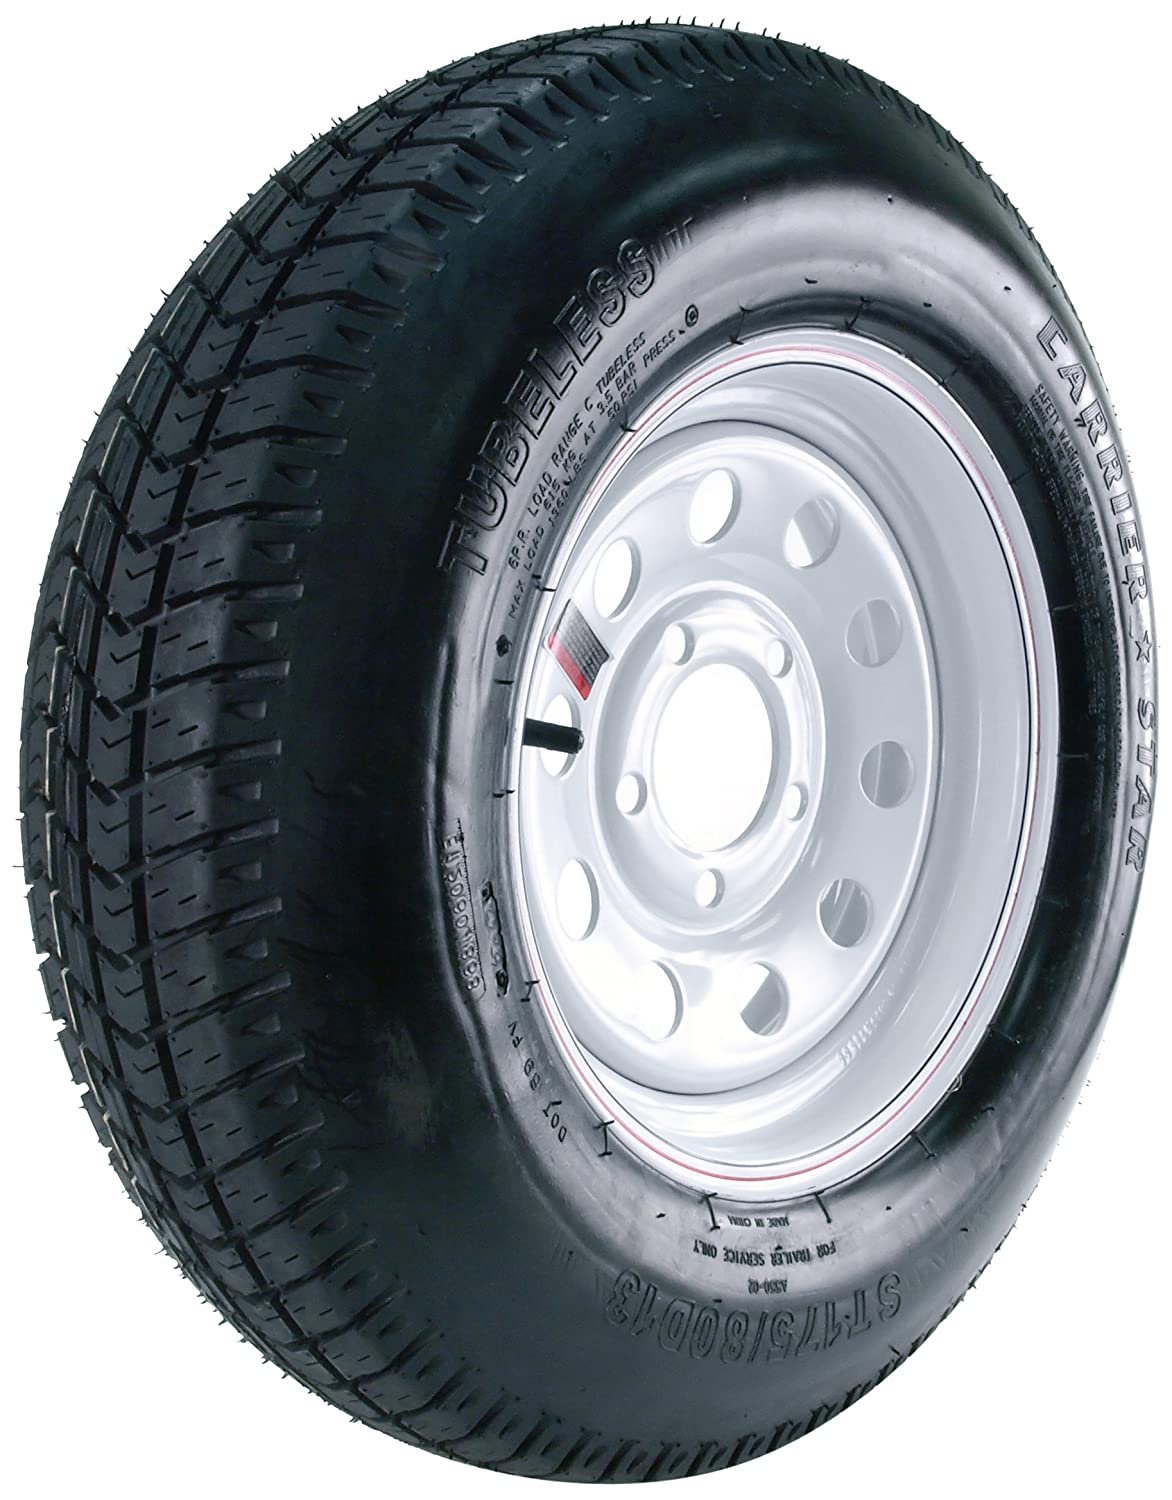 5//4.5 Carrier Star Trailer Tire and 5-Hole Mod Wheel 175//80D-13